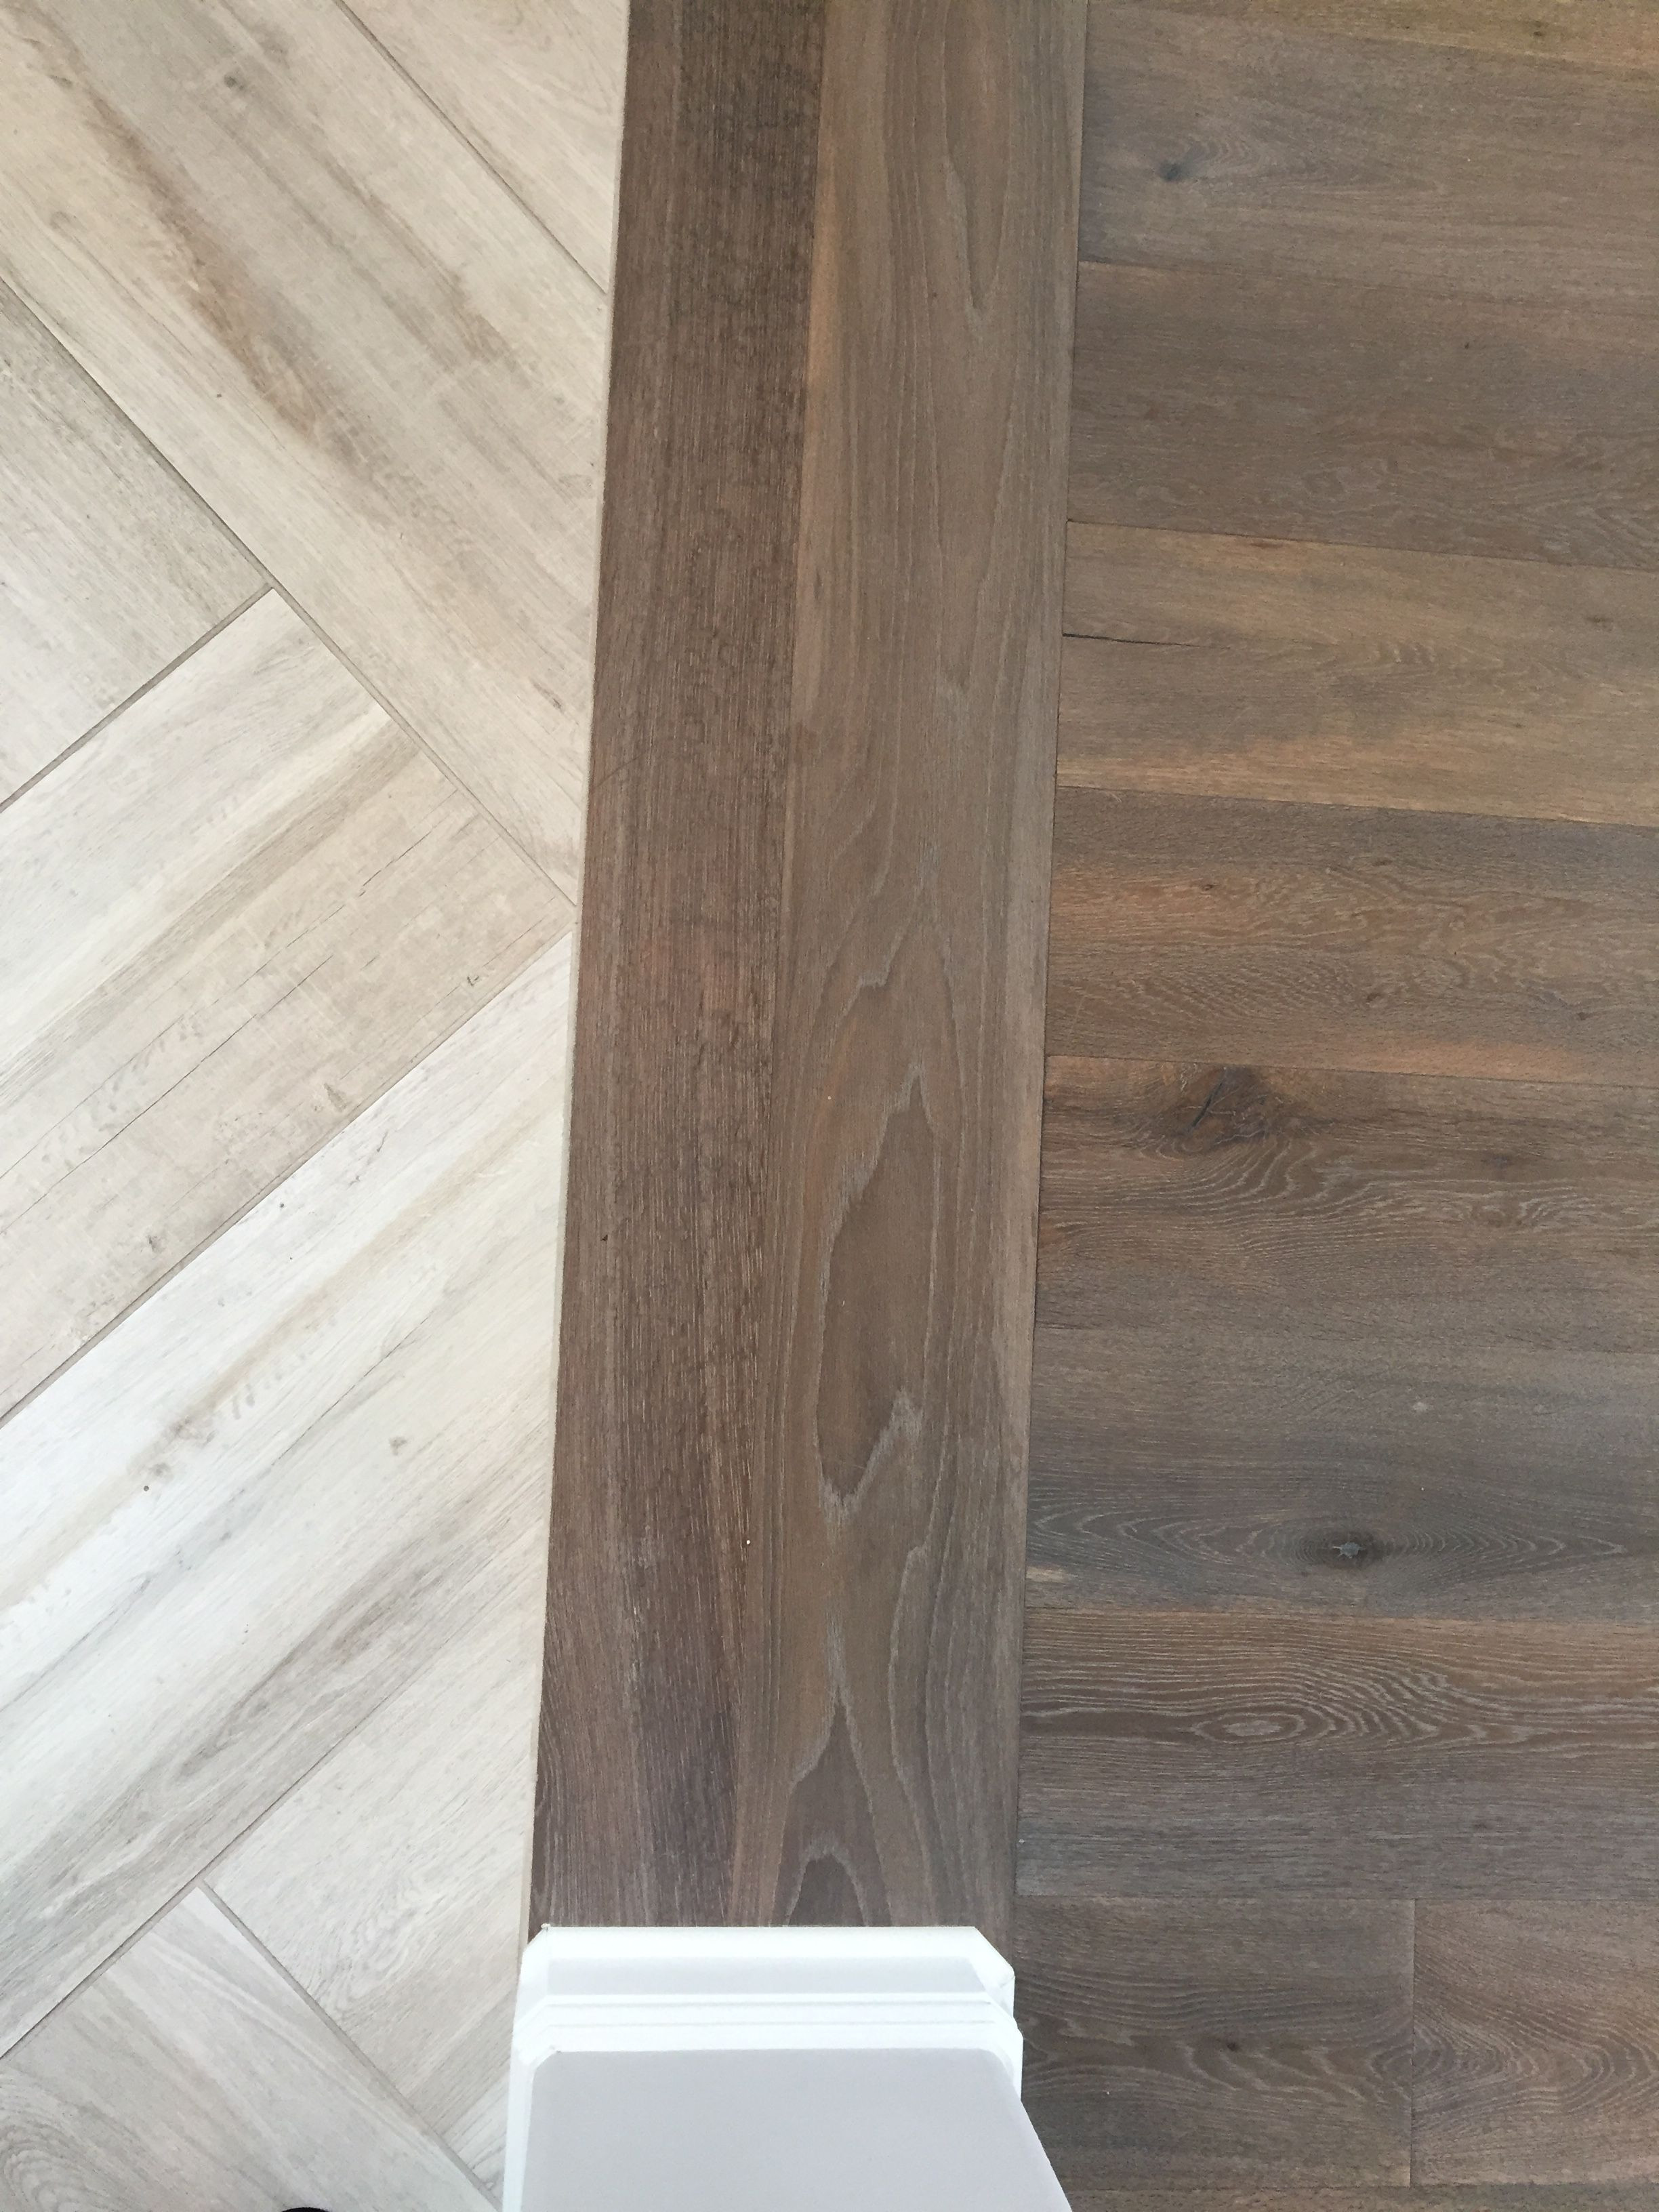 install bruce hardwood floors yourself of floor transition laminate to herringbone tile pattern model inside floor transition laminate to herringbone tile pattern